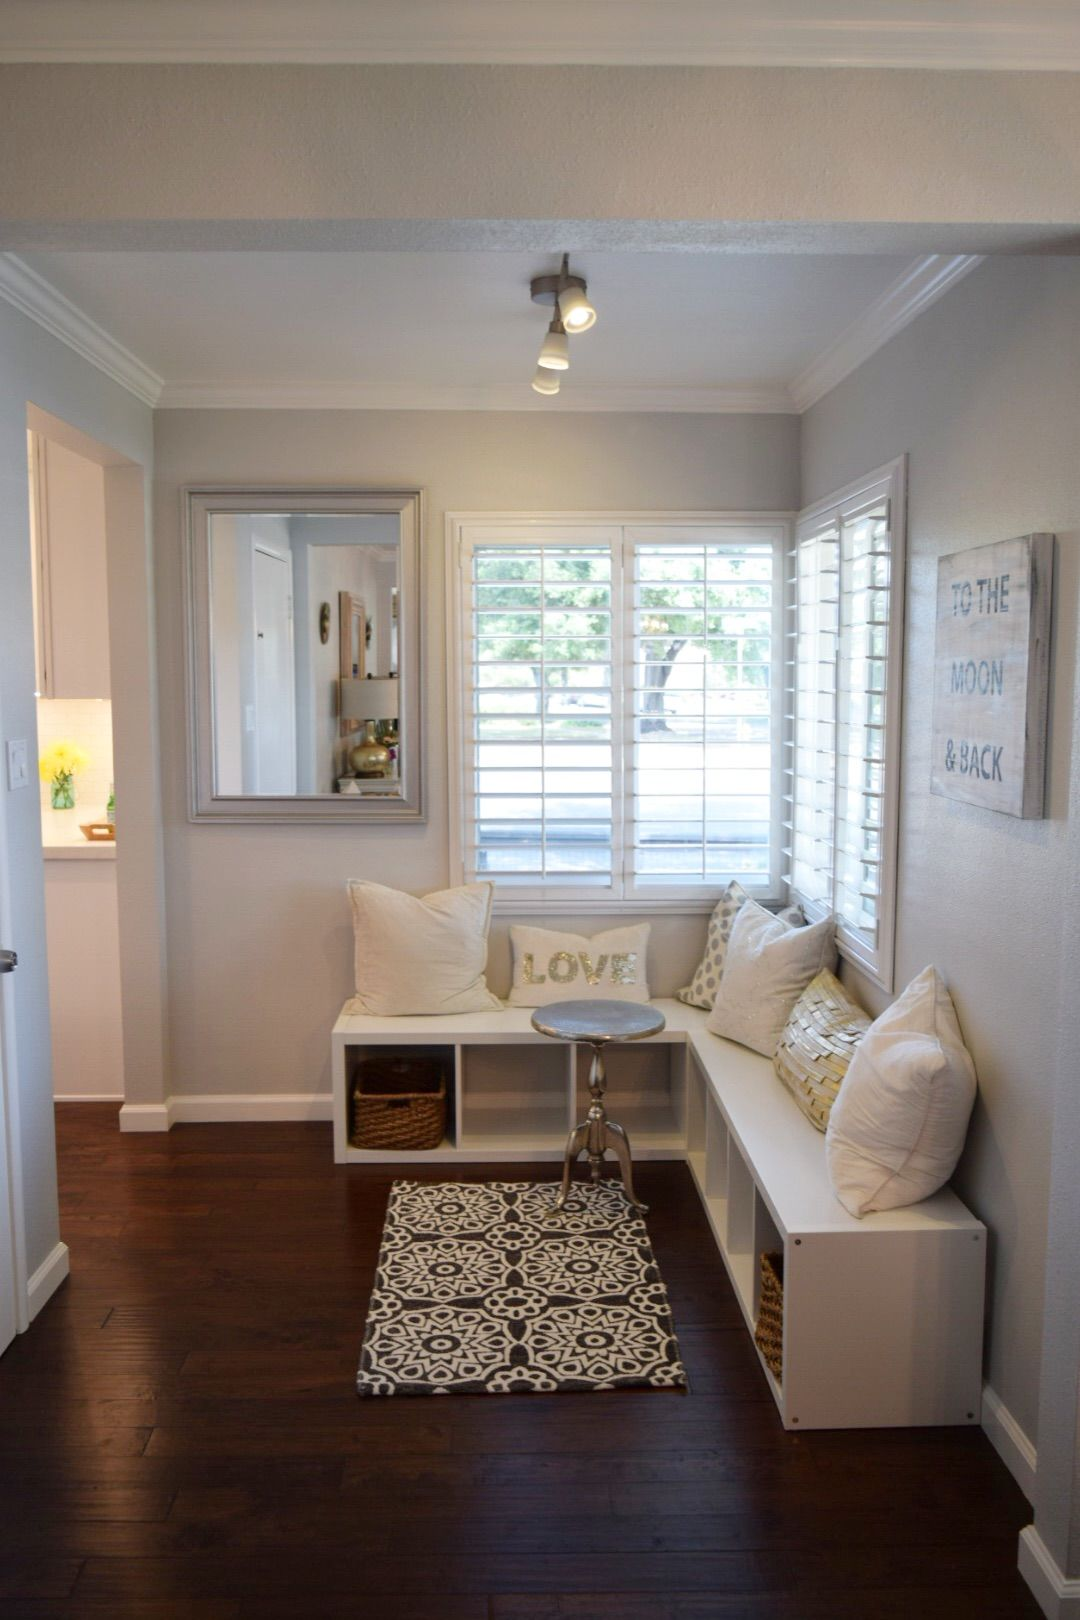 create easy window seating area with pillows for comfort and accent table storage baskets decorative little rug complete the look small round occasional metal floor threshold